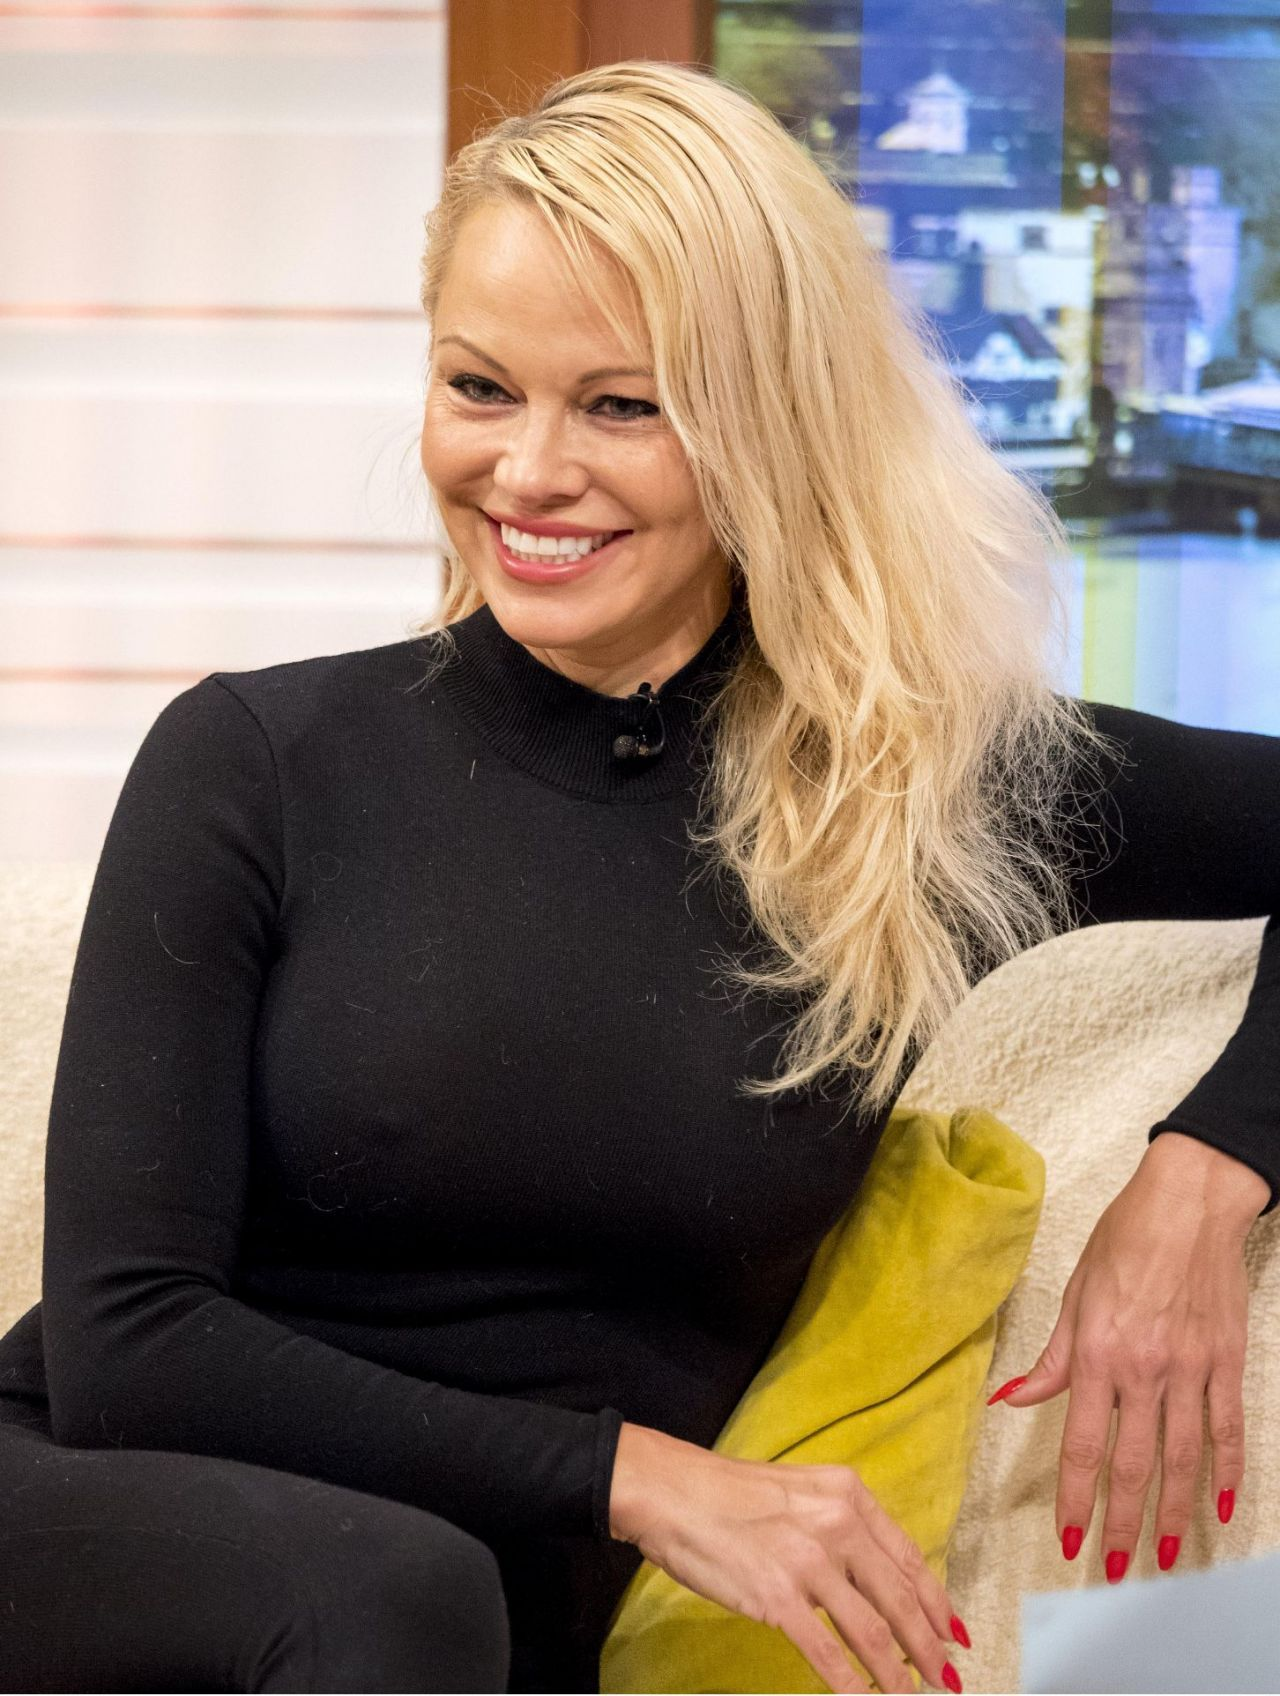 pamela-anderson-in-porn-showes-sex-in-islamabad